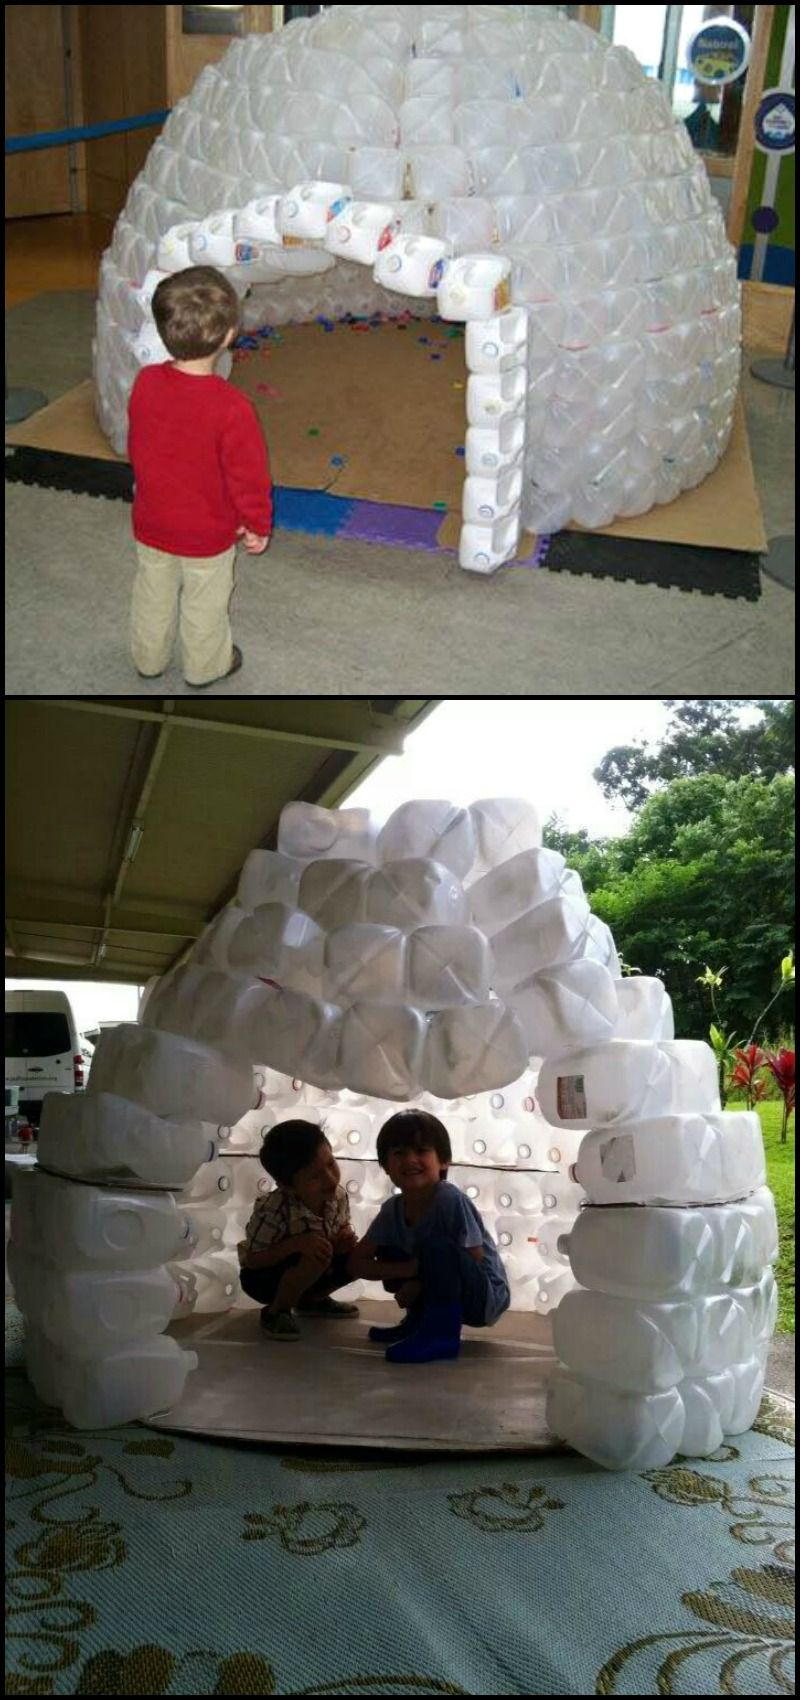 How to build a milk jug igloo http diyprojects for How to build an igloo out of milk jugs